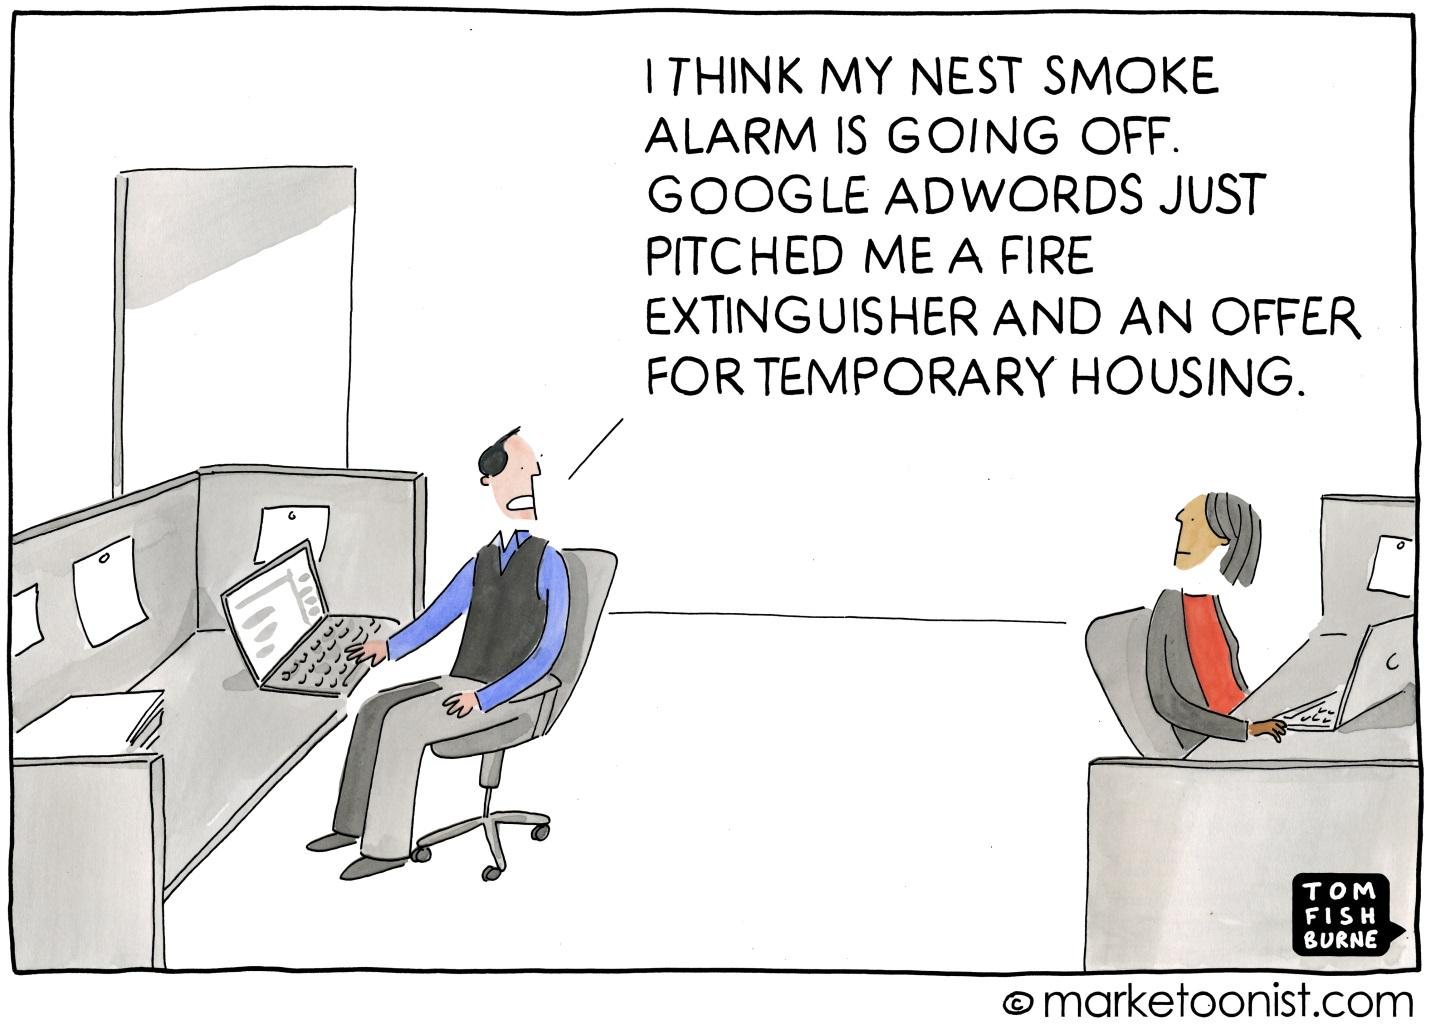 RT @JimHarris: Great Internet of Things Cartoon: 50 Billion Connected Devices Predicted by 2020 #CES2015 #IoT #BigData http://t.co/Lyk2CmbnOf